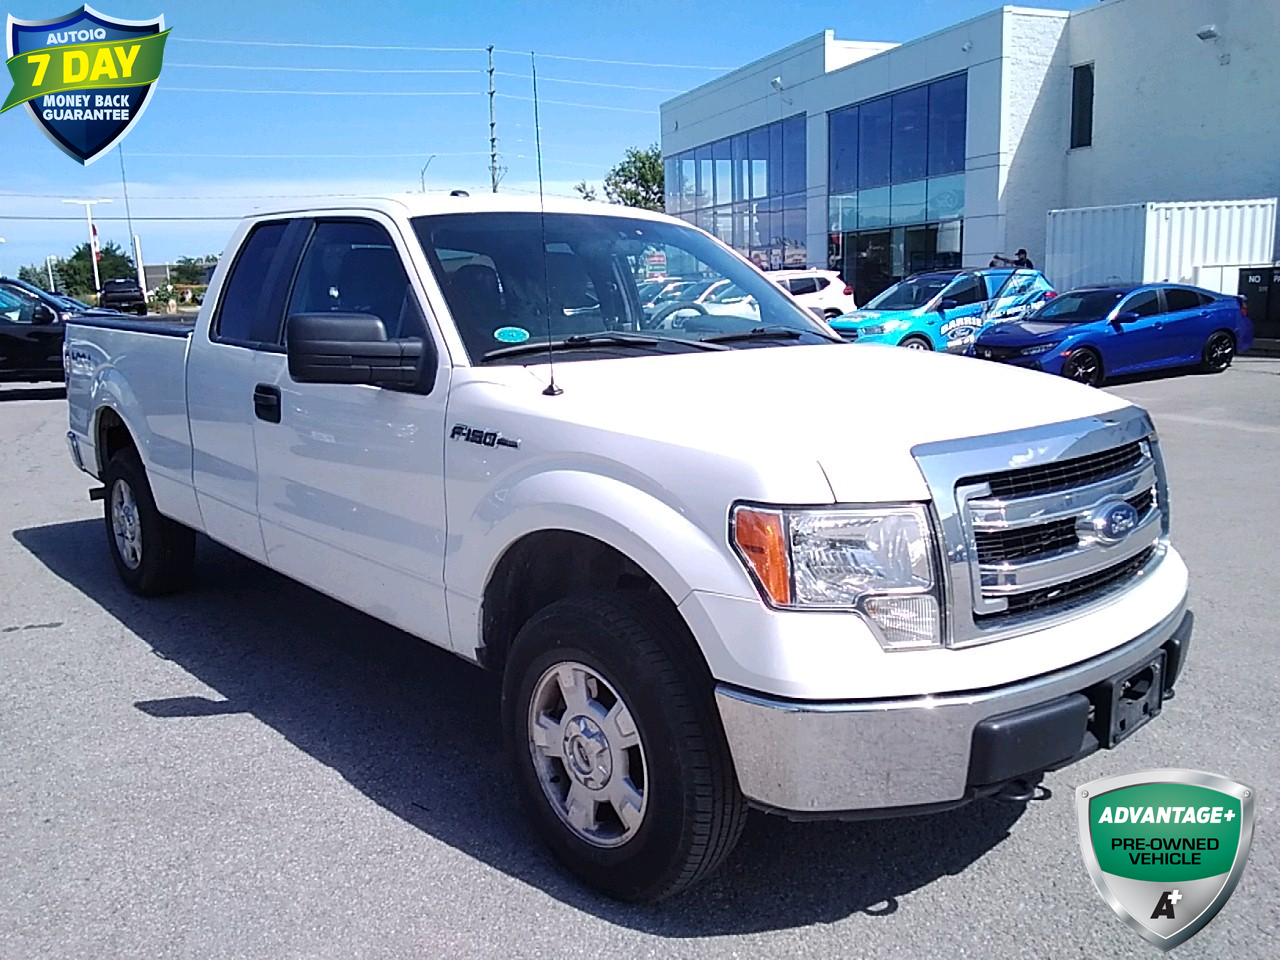 used 2013 Ford F-150 car, priced at $24,623